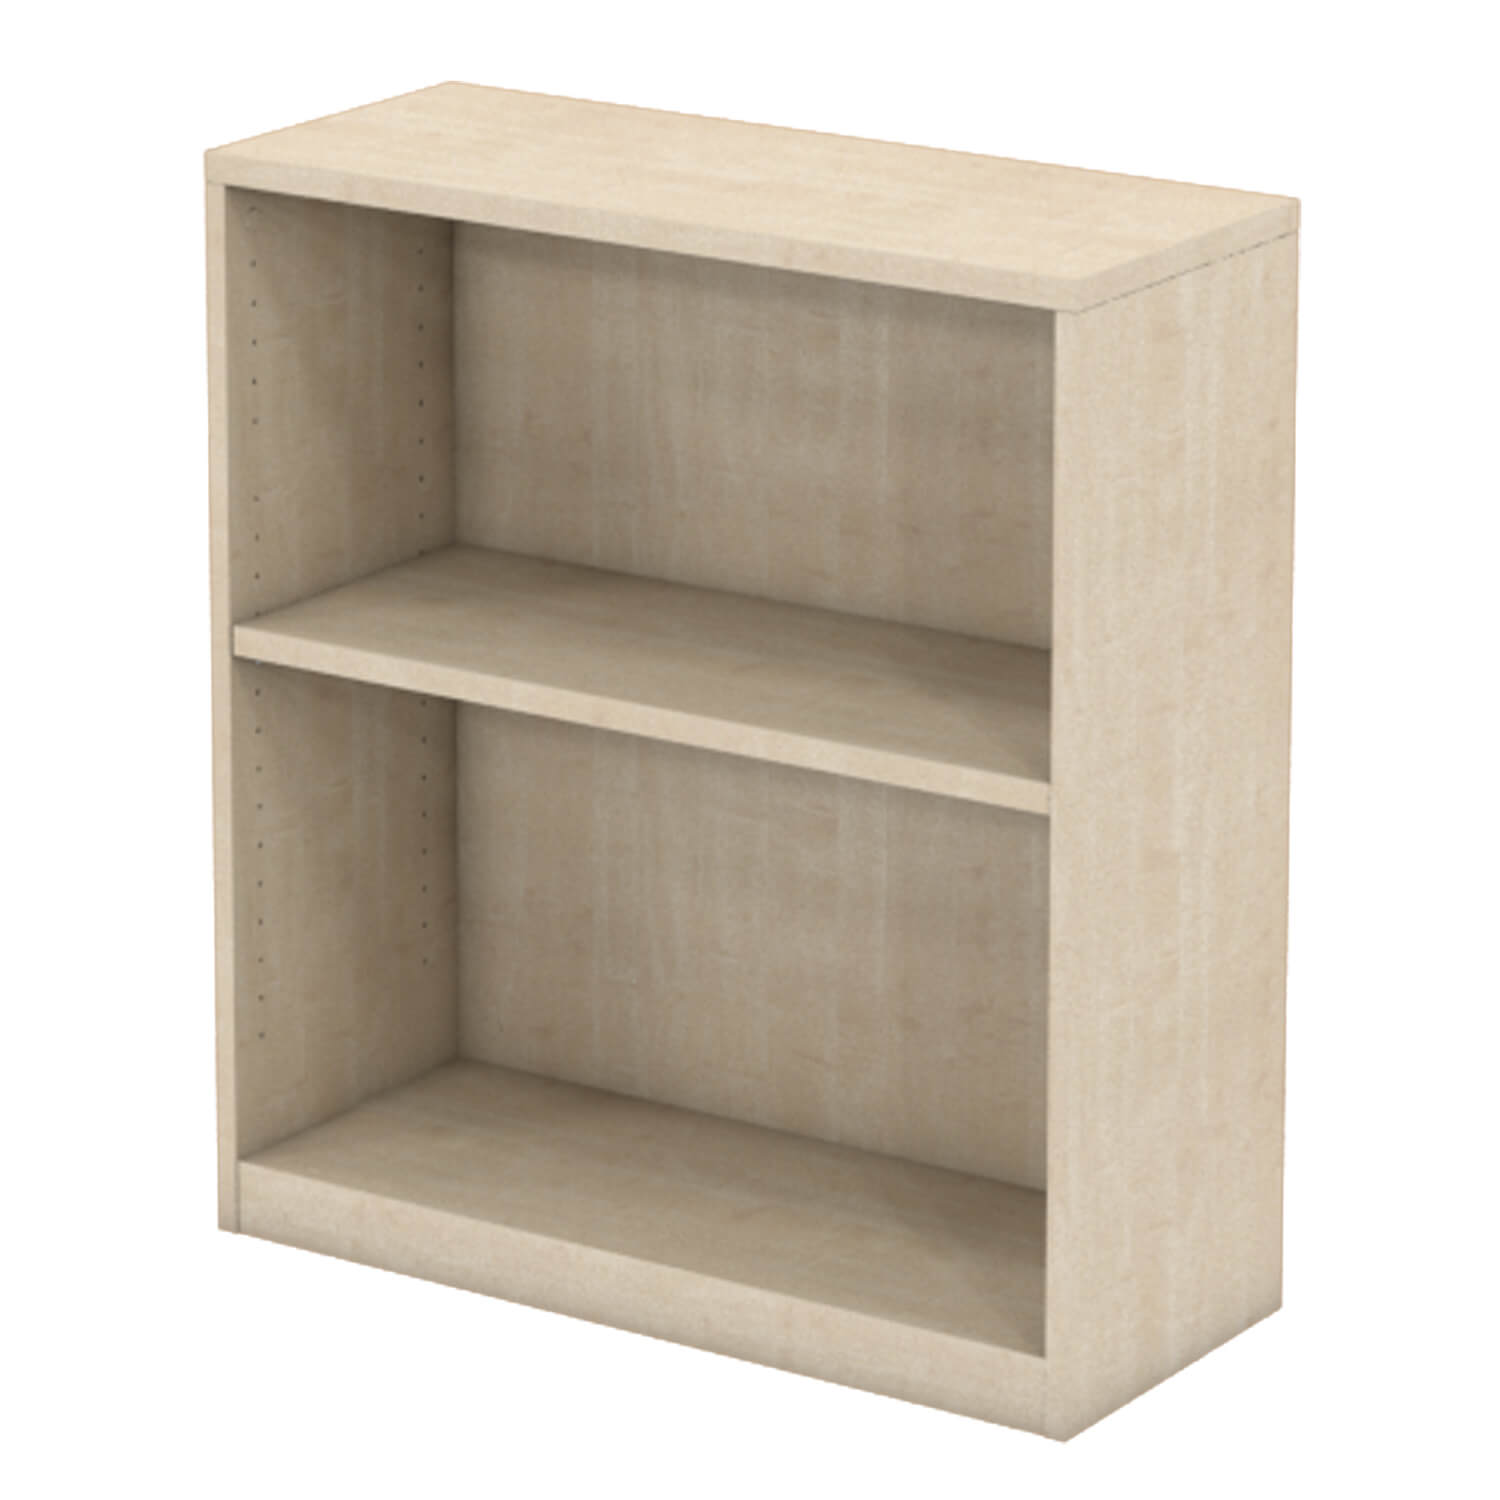 LP Infinity 1 Shelf Combination Unit